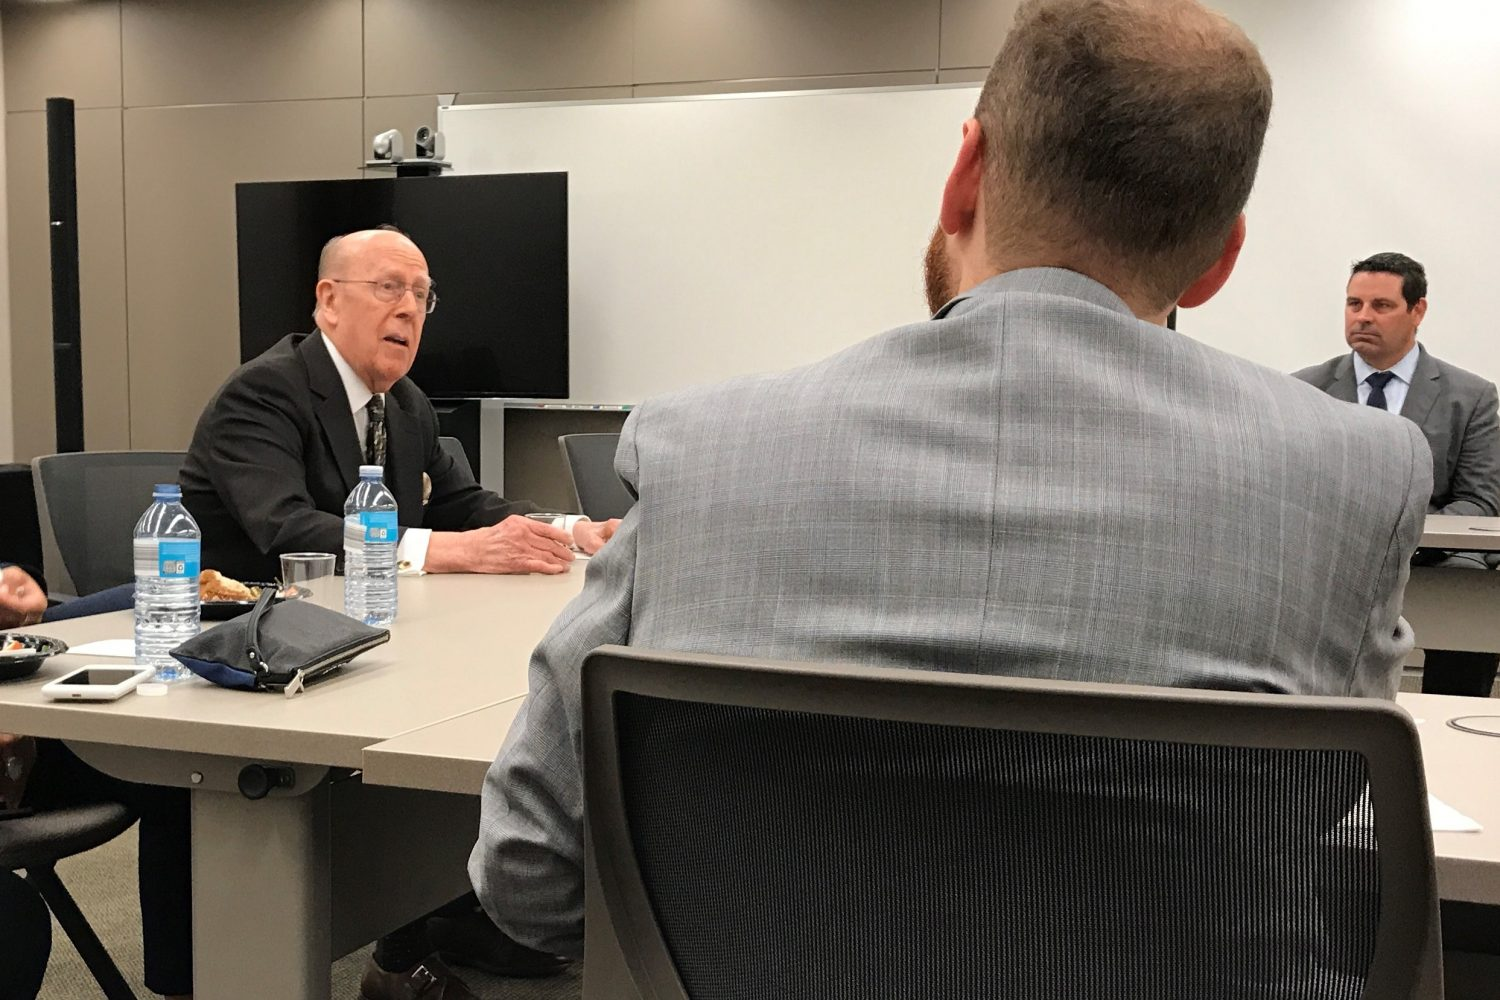 Chambers Lunch With 7th Circuit's Judge William Bauer